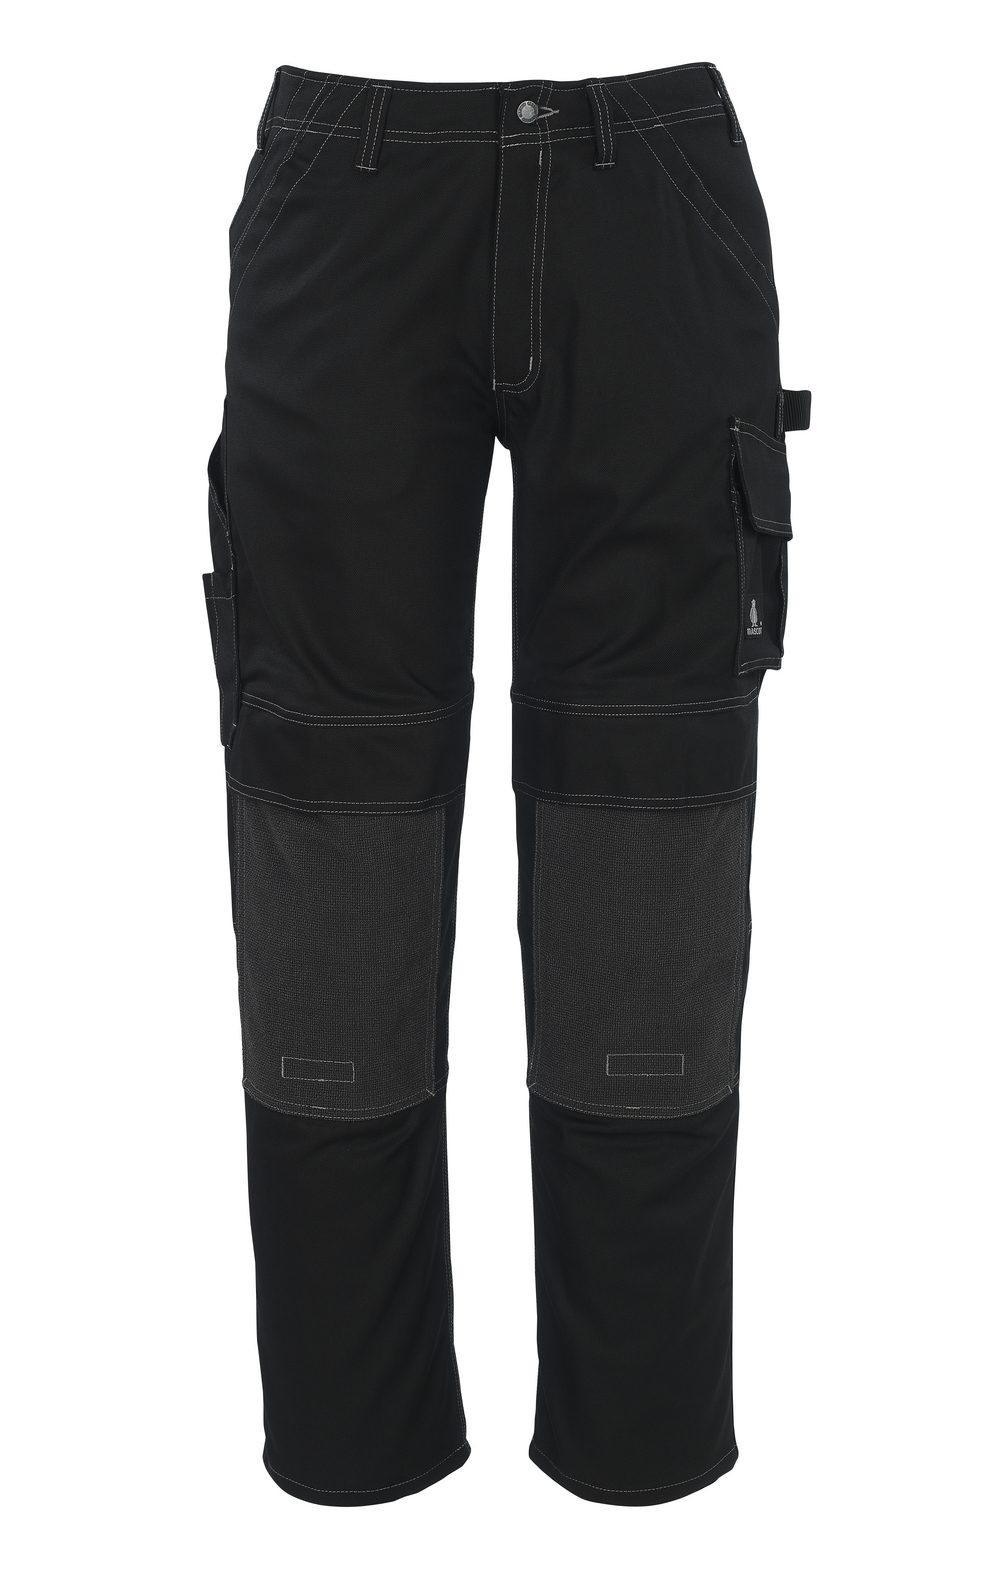 Lerida Trousers with Kevlar® Knee Pad Pockets Black